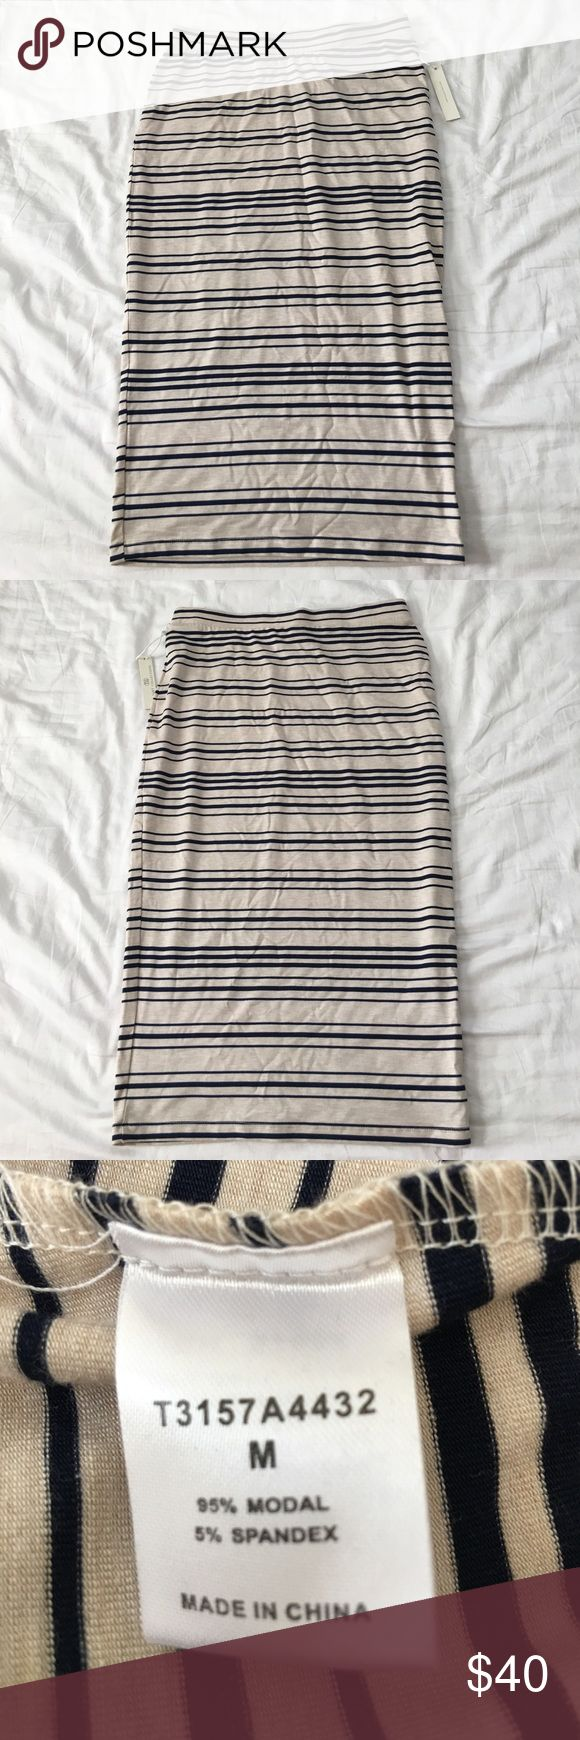 BNWT Tart Collection Blanche Pencil Skirt M BNWT, never worn, Tarte Collection Cream and Navy striped pencil skirt. Size Medium. Received from Stitch Fix box. Elastic waistband. 95% Modal 5% Spandex. Made in China. Tart Skirts Pencil